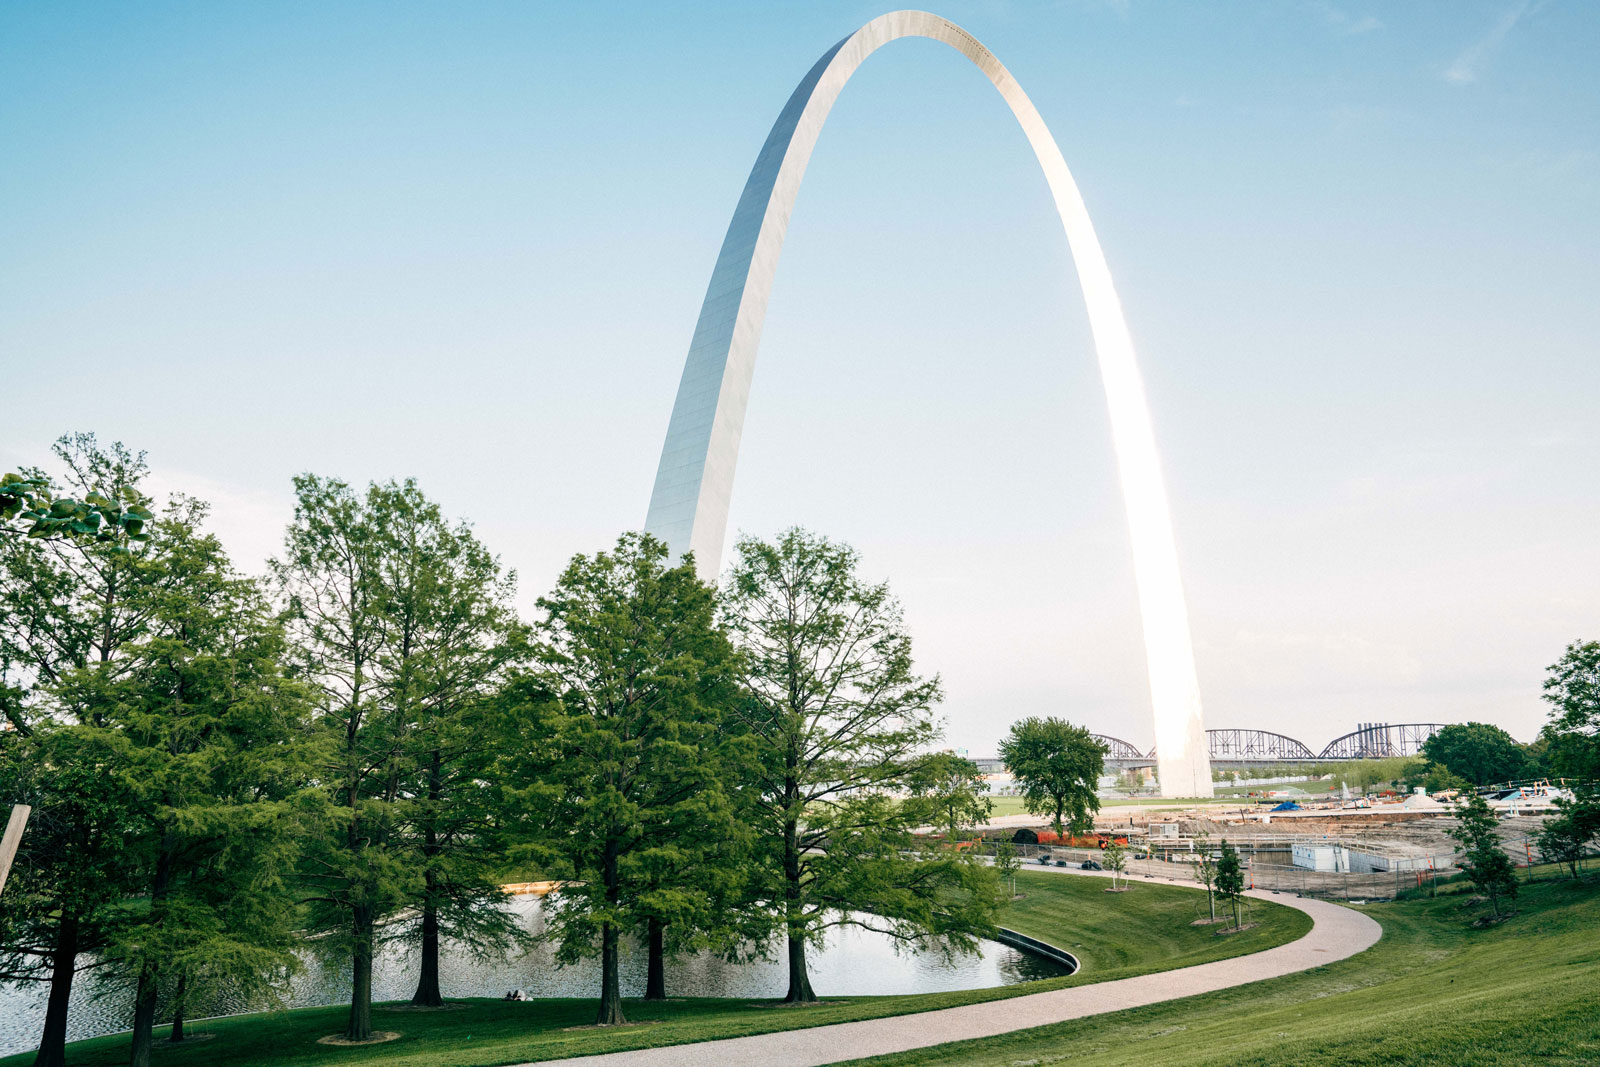 St Louis Arch in St Louis, MO